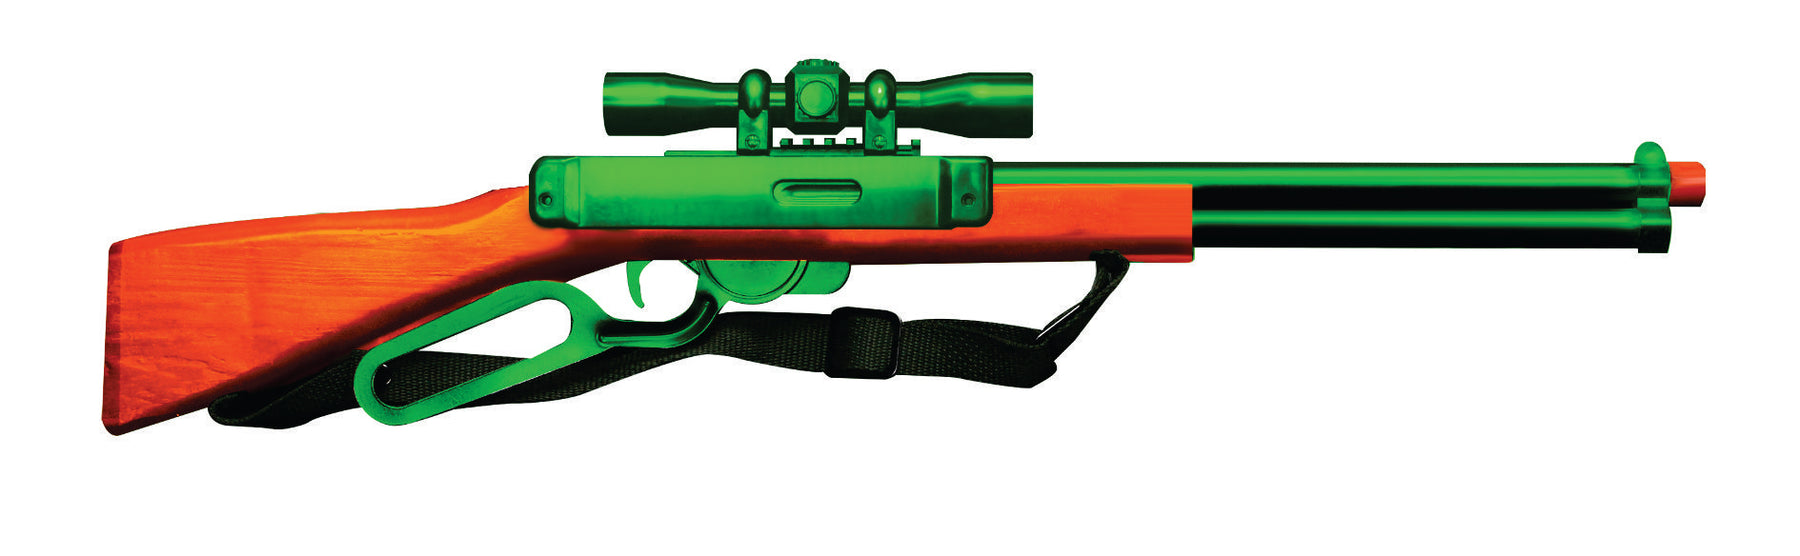 WESTERN REPEATER RIFLE Colored